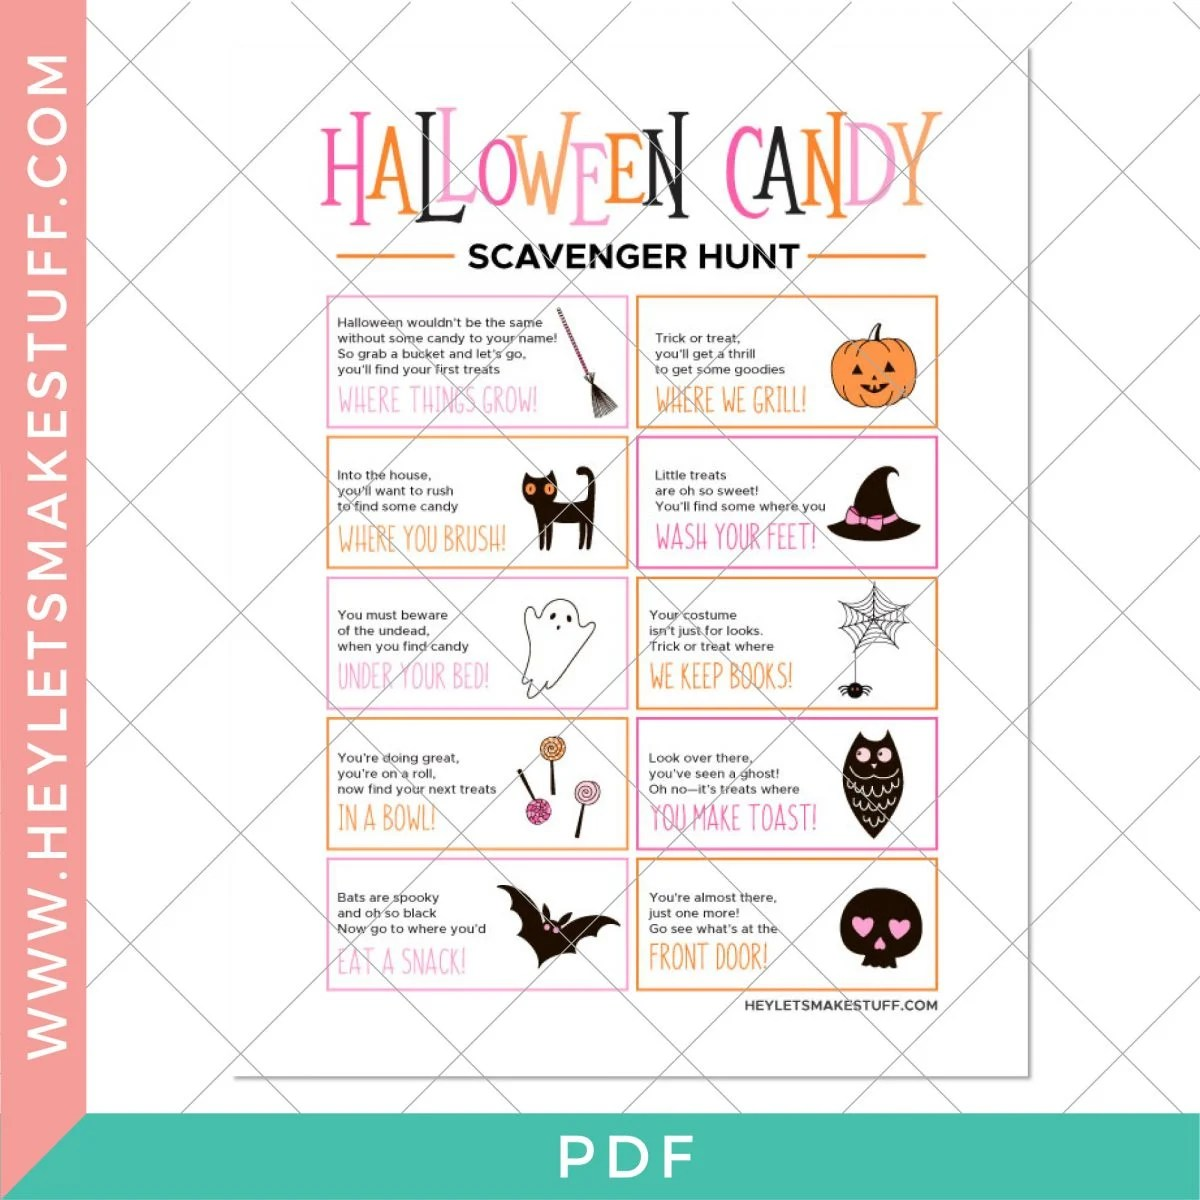 Security image with Halloween Candy Scavenger Hunt